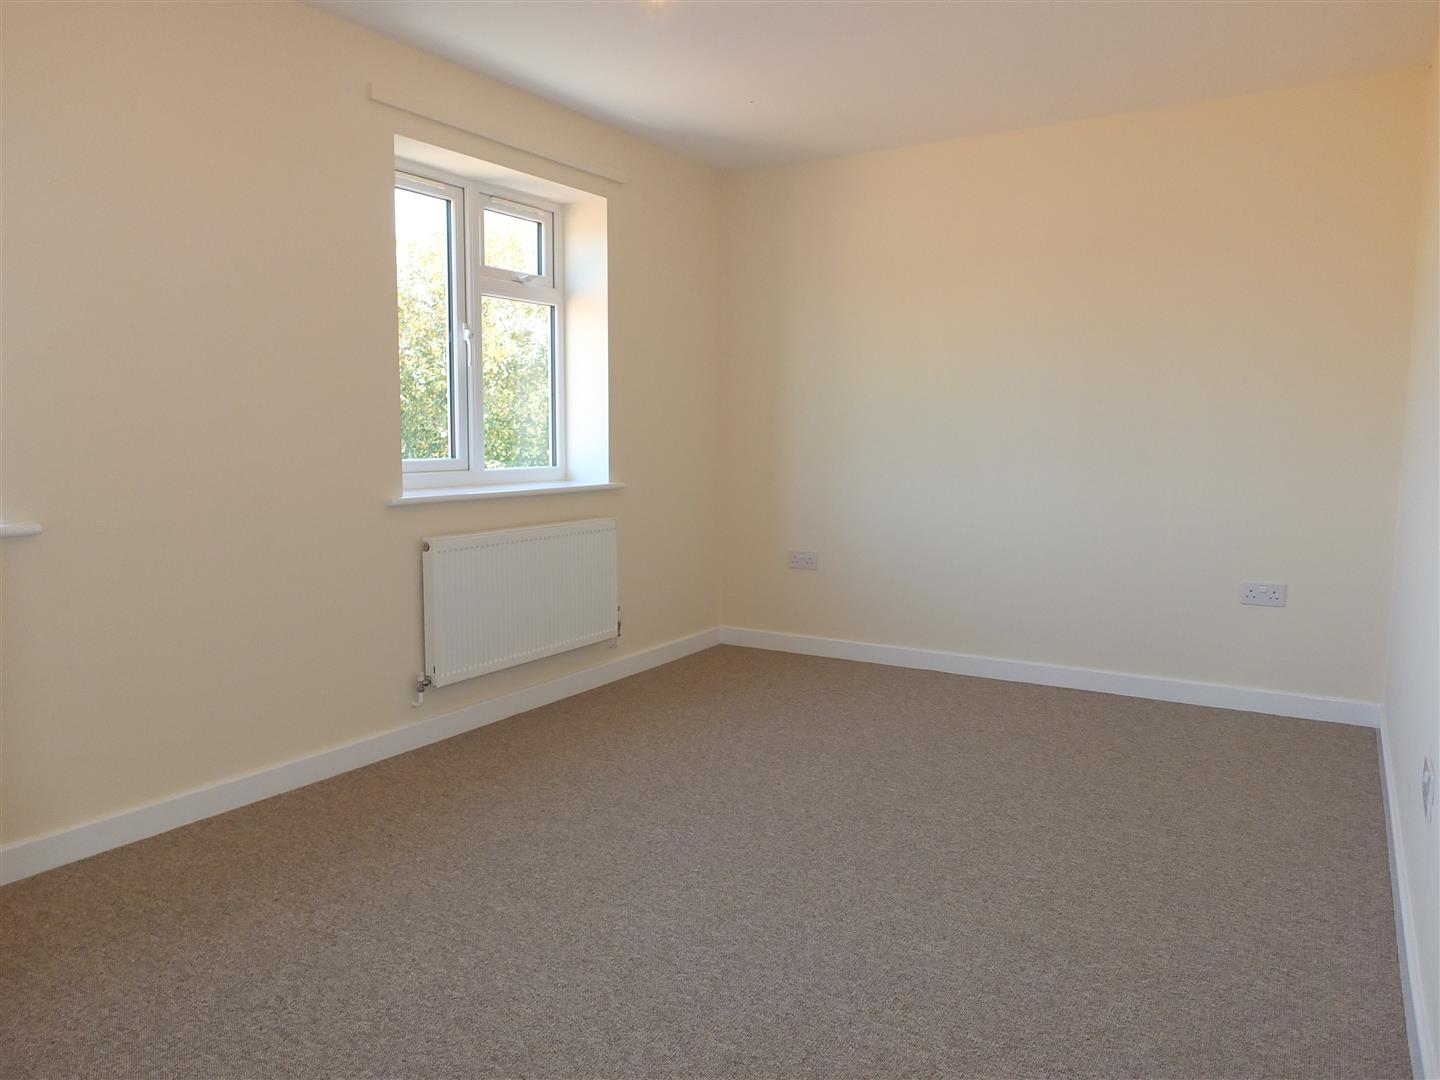 2 bed house to rent in Long Sutton, PE12 9LE  - Property Image 7